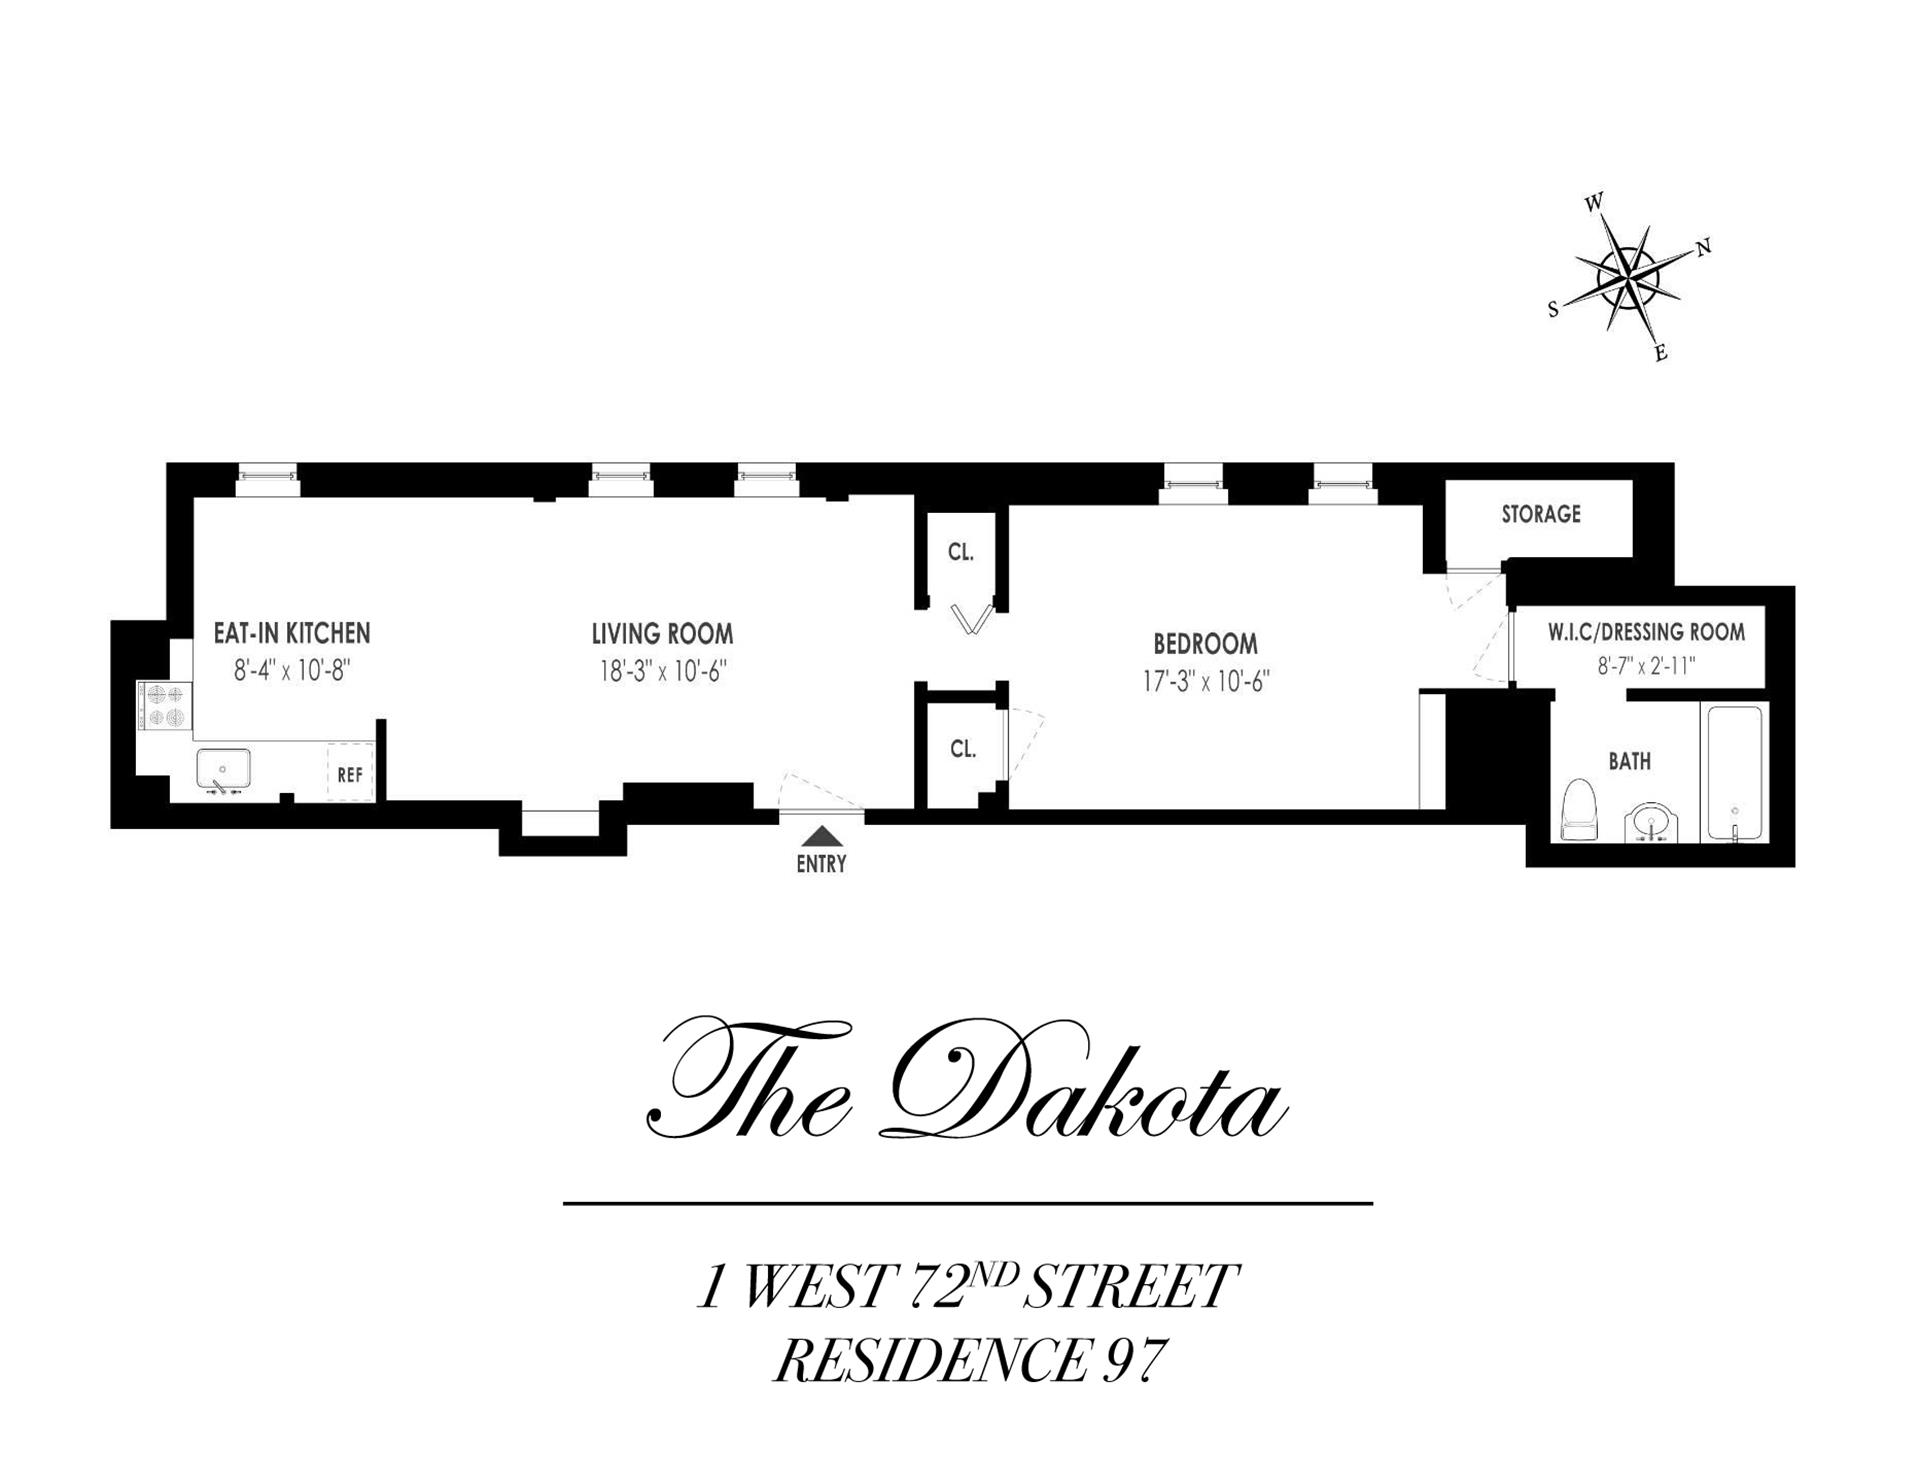 Floor plan of 1 West 72nd St, 97 - Upper West Side, New York